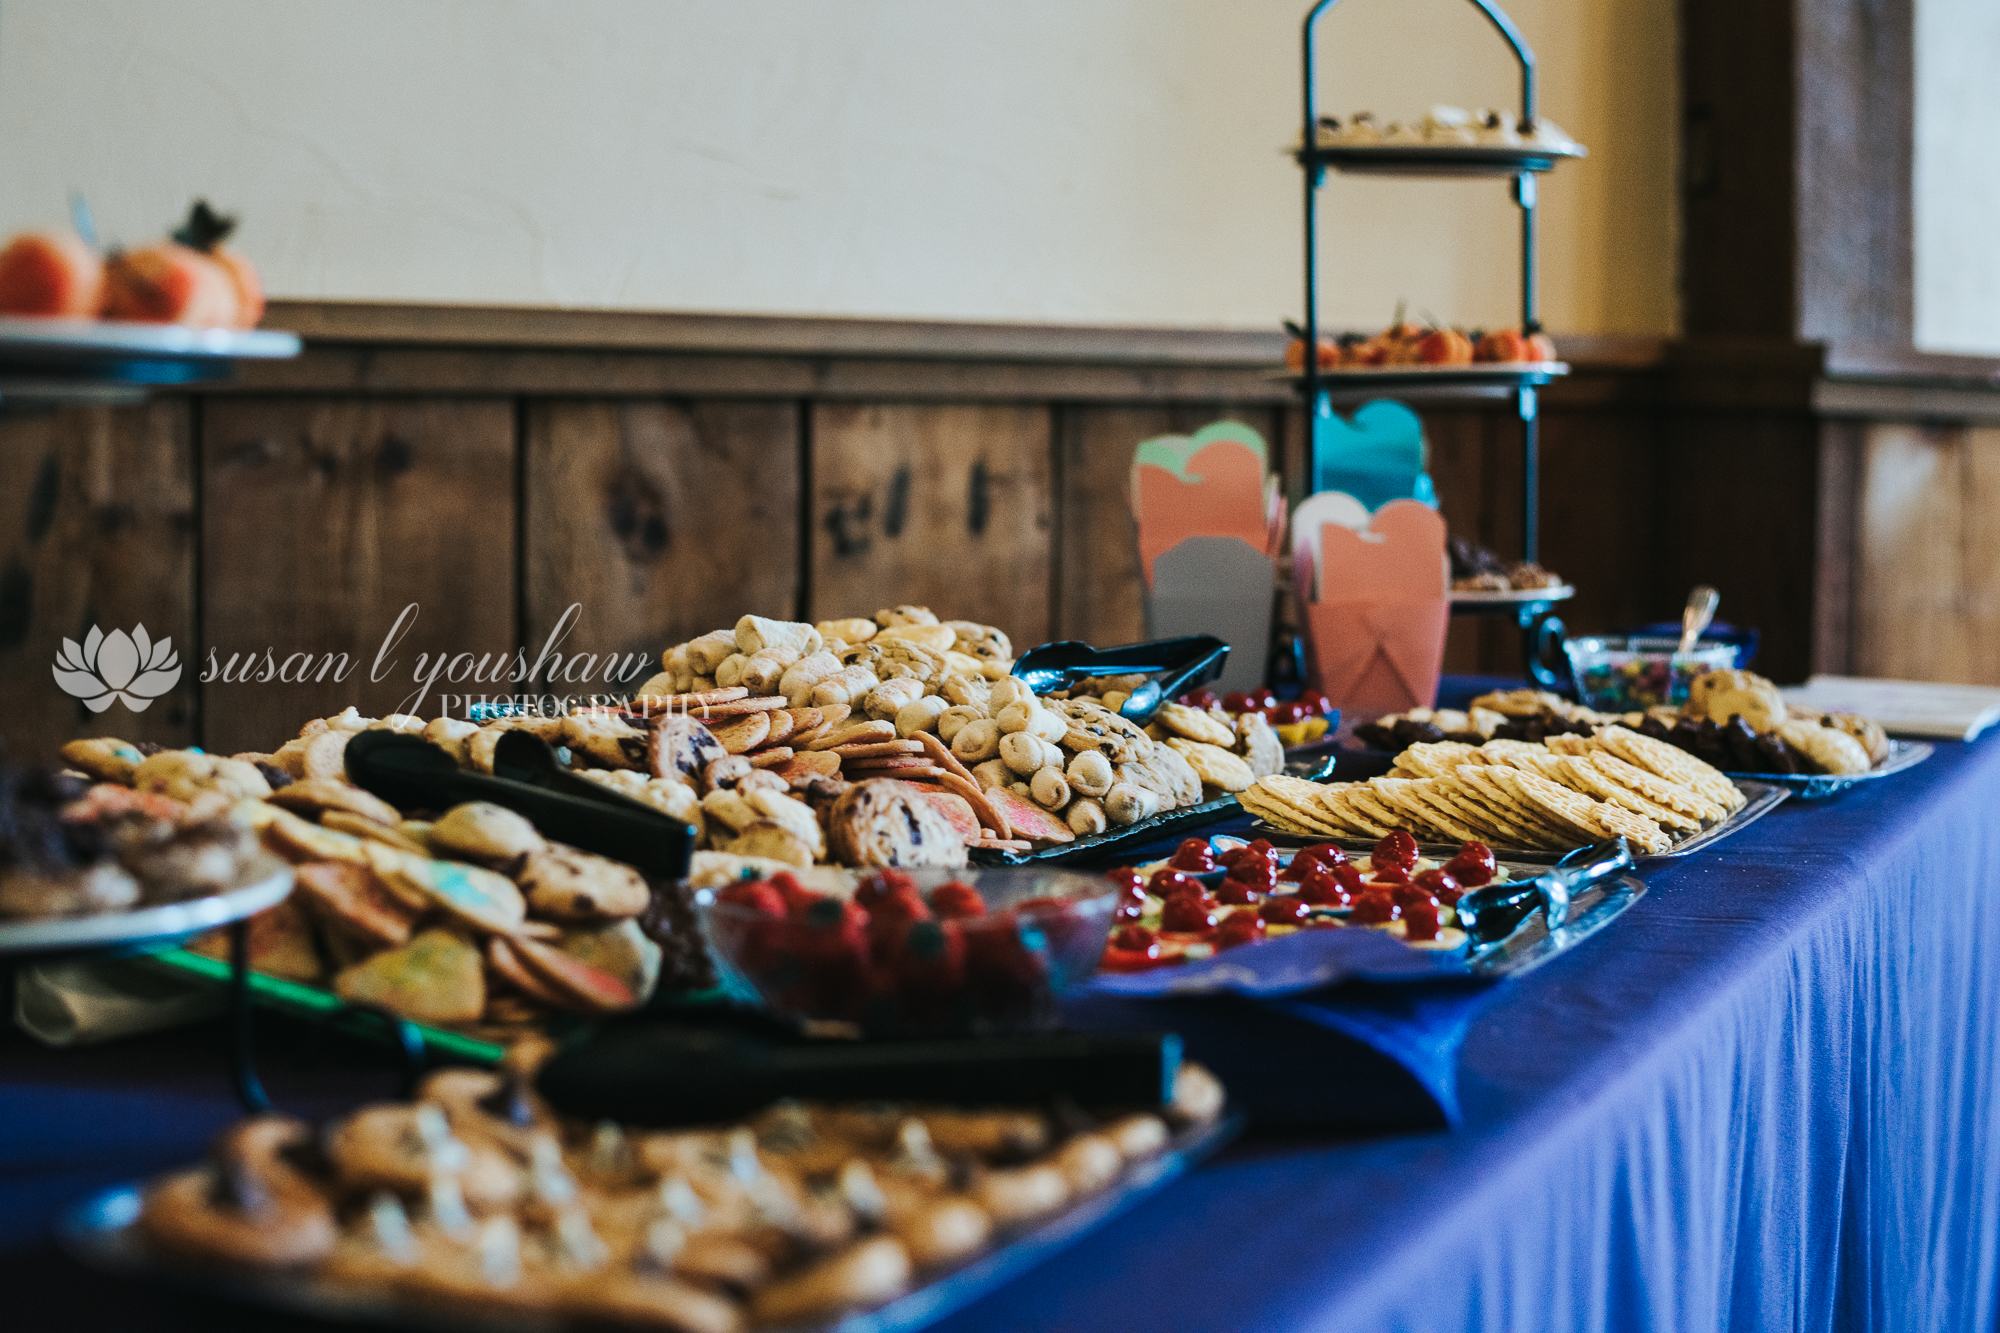 Adena and  Erik Wedding 05-17-2019 SLY Photography-69.jpg